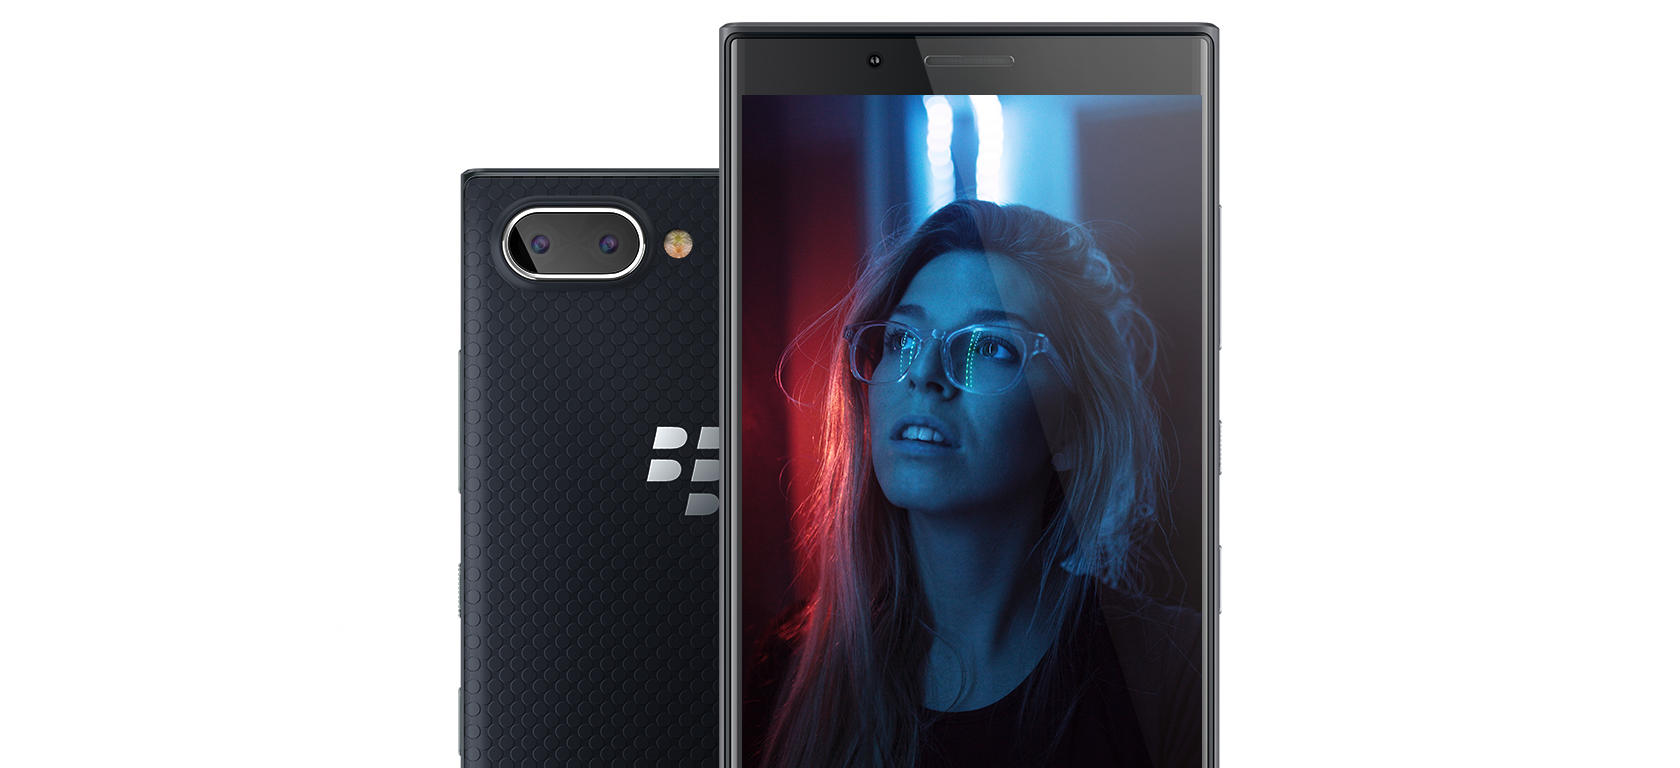 dual camera1 - BlackBerry KEY2 LE